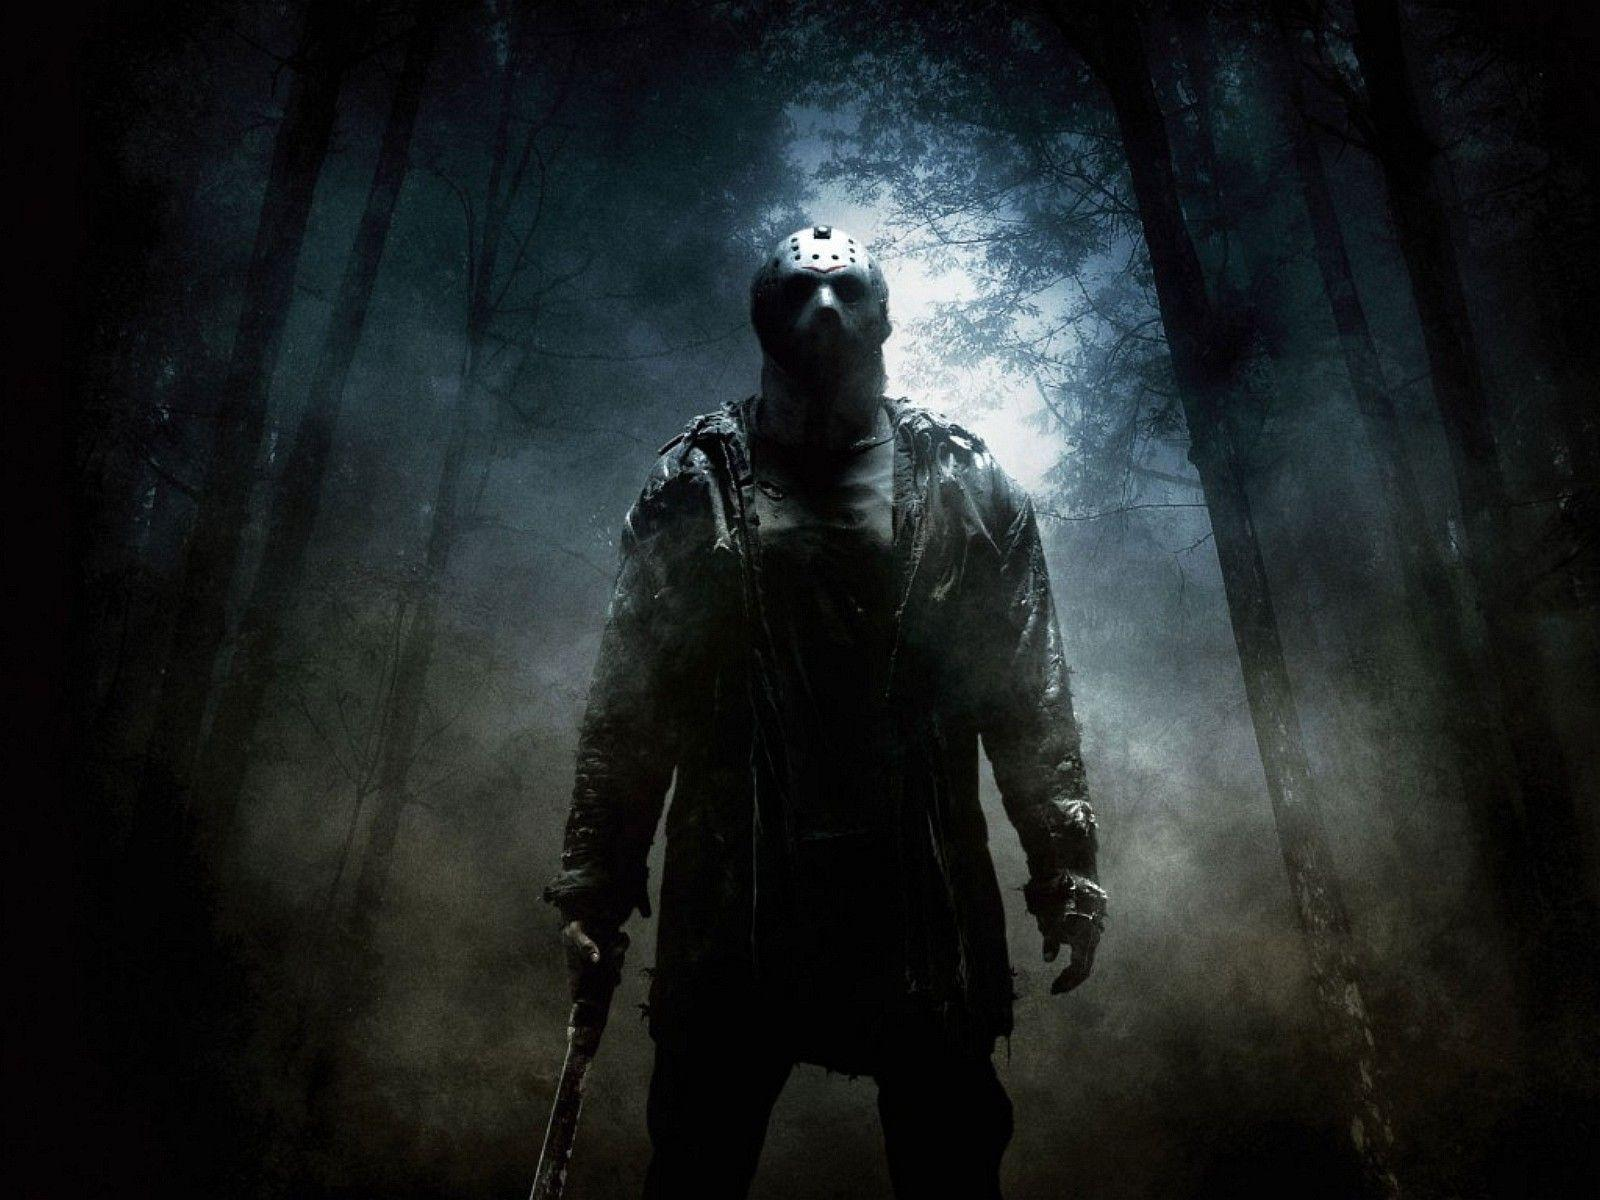 16 Friday The 13th (2009) HD Wallpapers | Backgrounds - Wallpaper ...